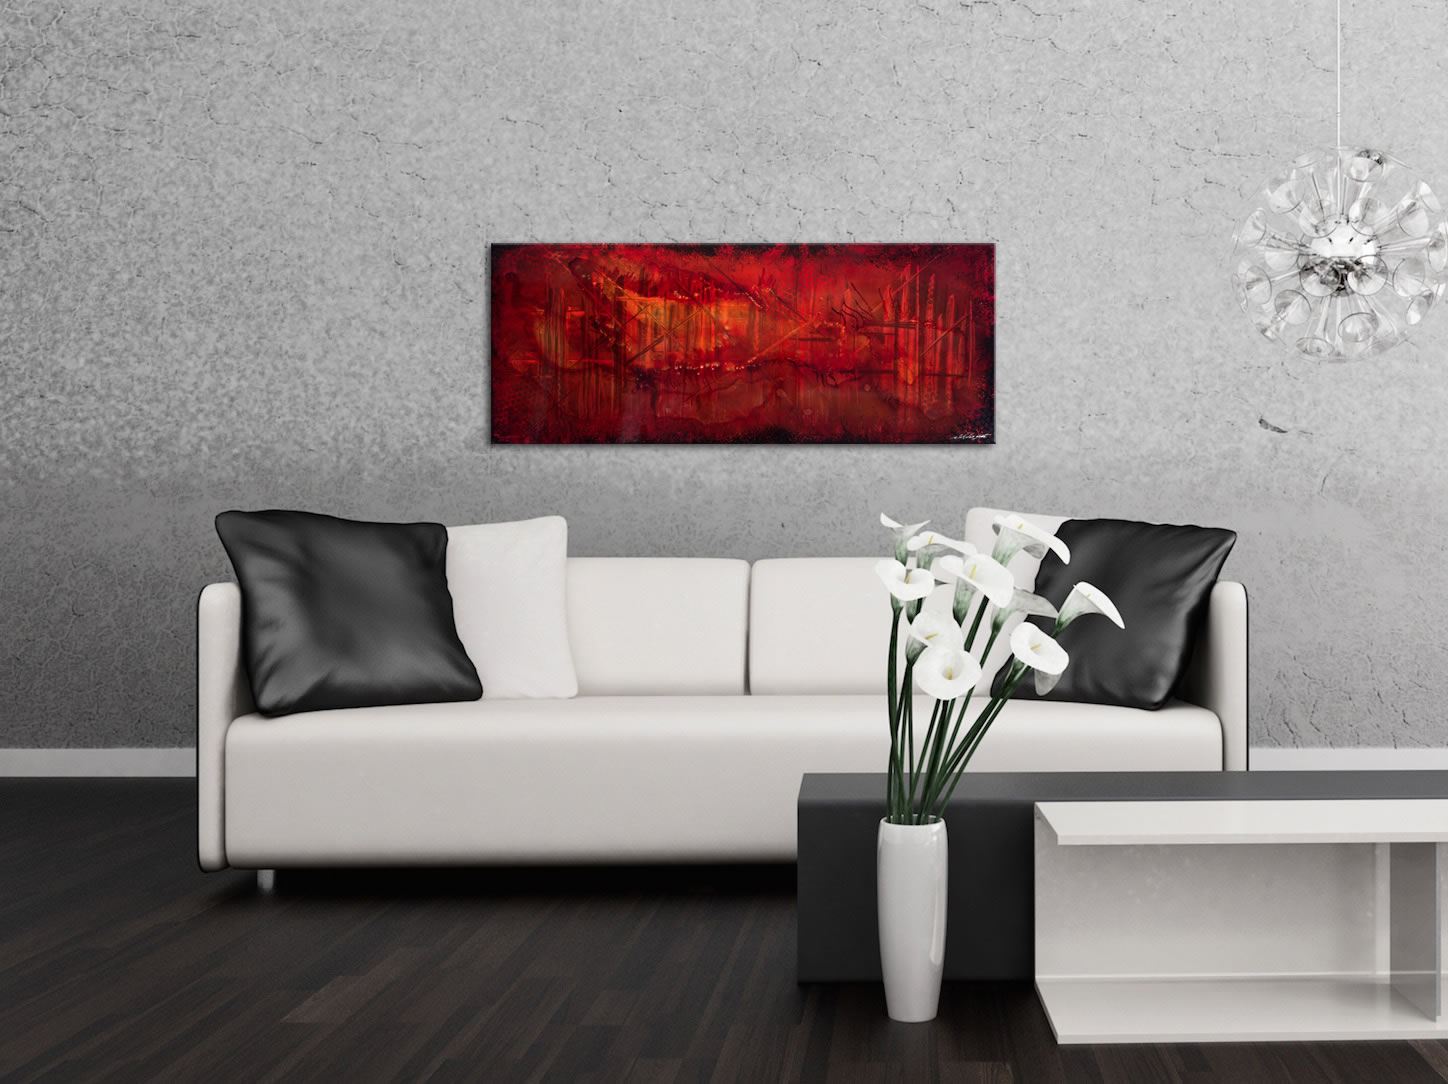 Dreamscape - Contemporary Metal Wall Art - Lifestyle Image